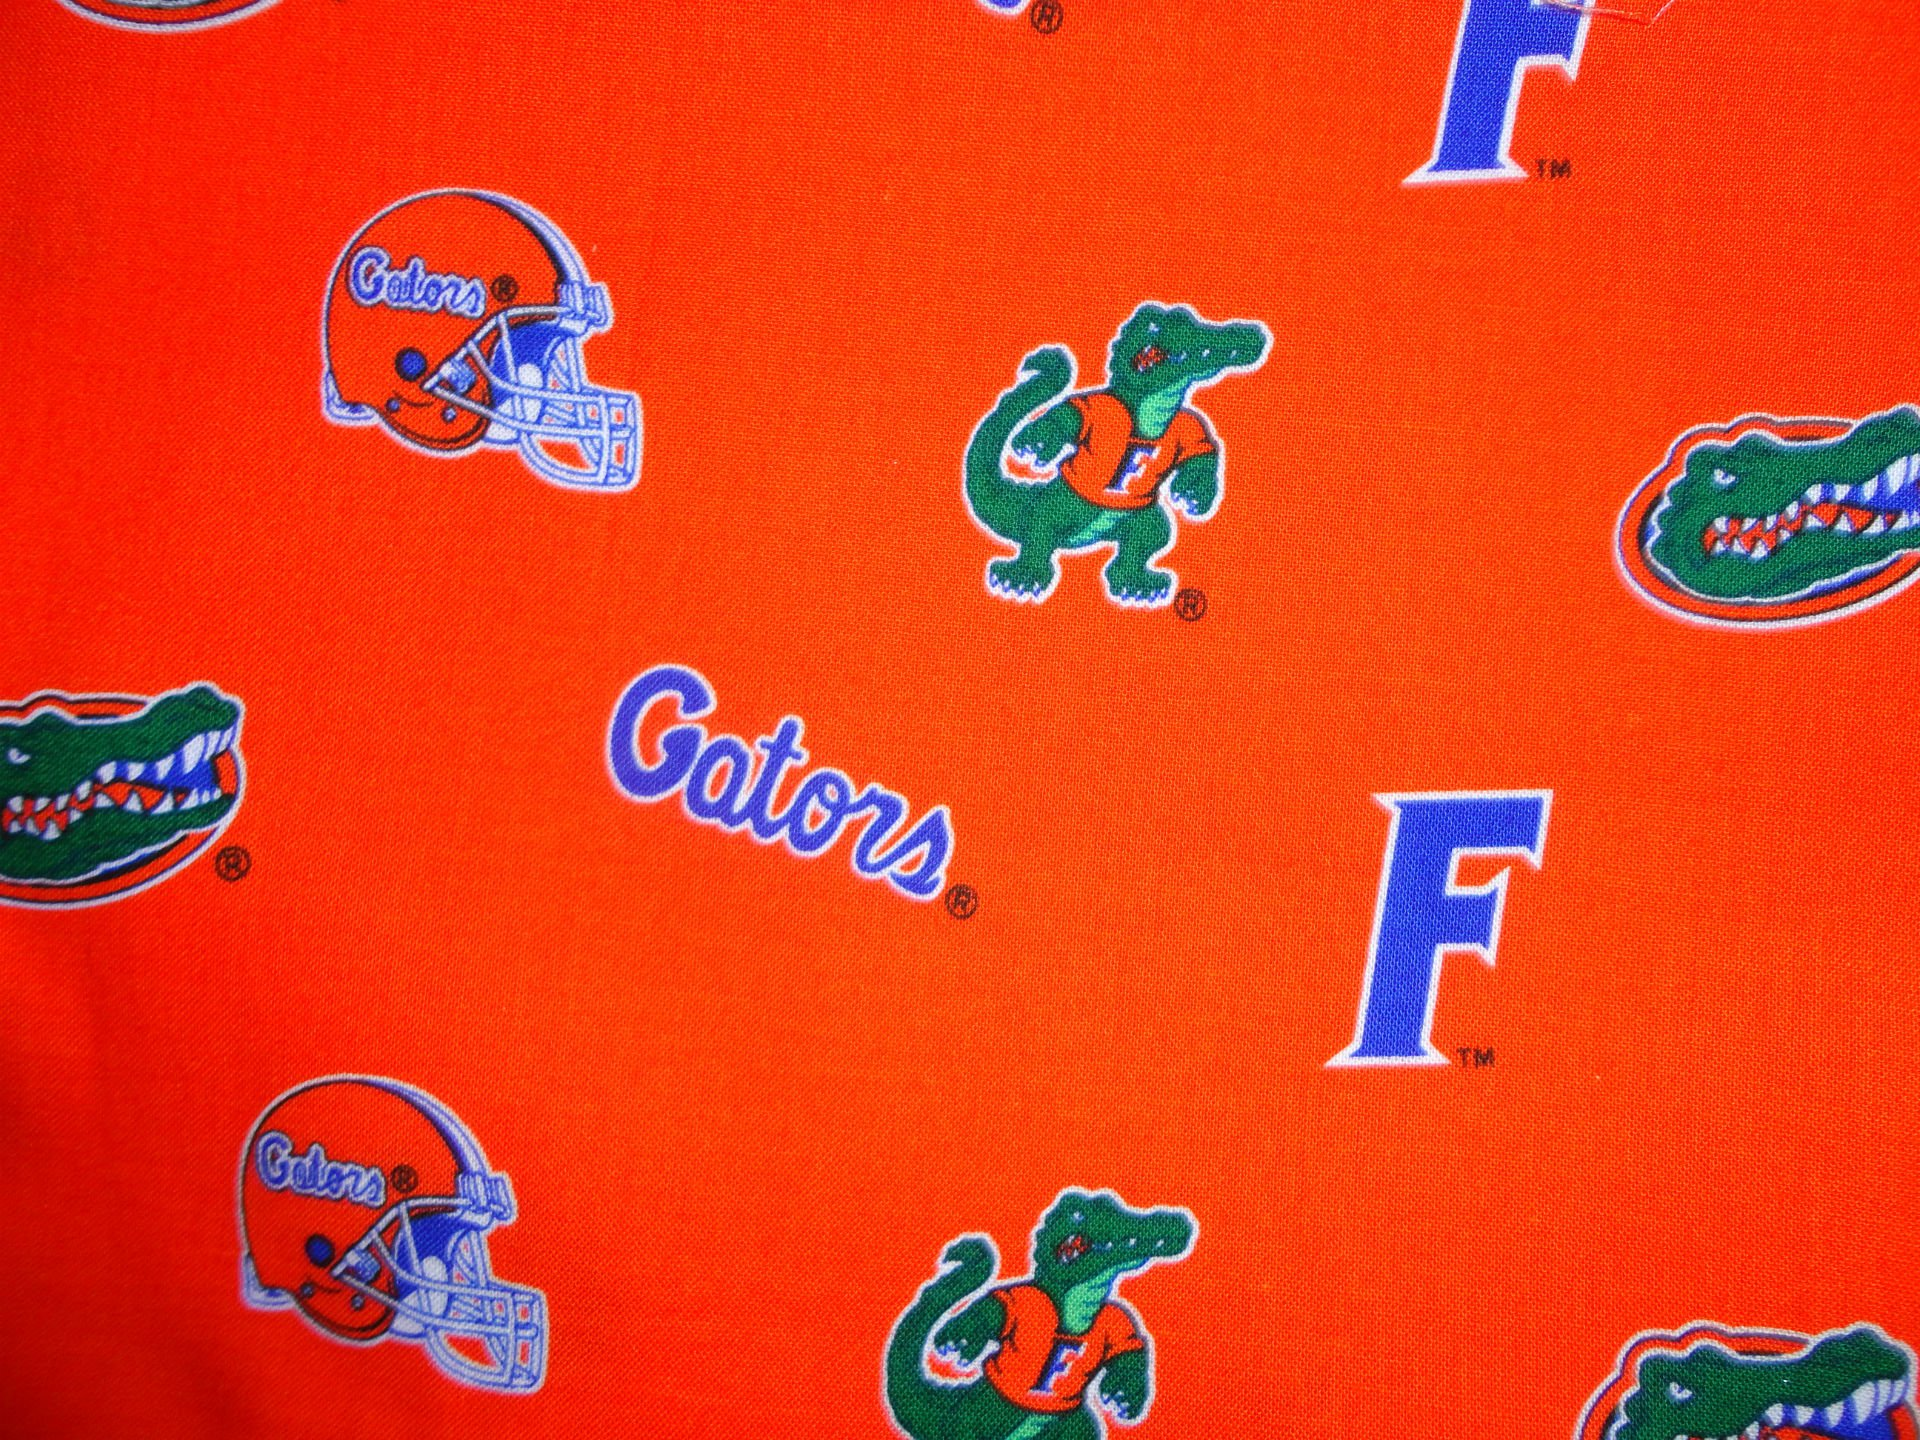 FLORIDA GATORS college football wallpaper background 1920x1440